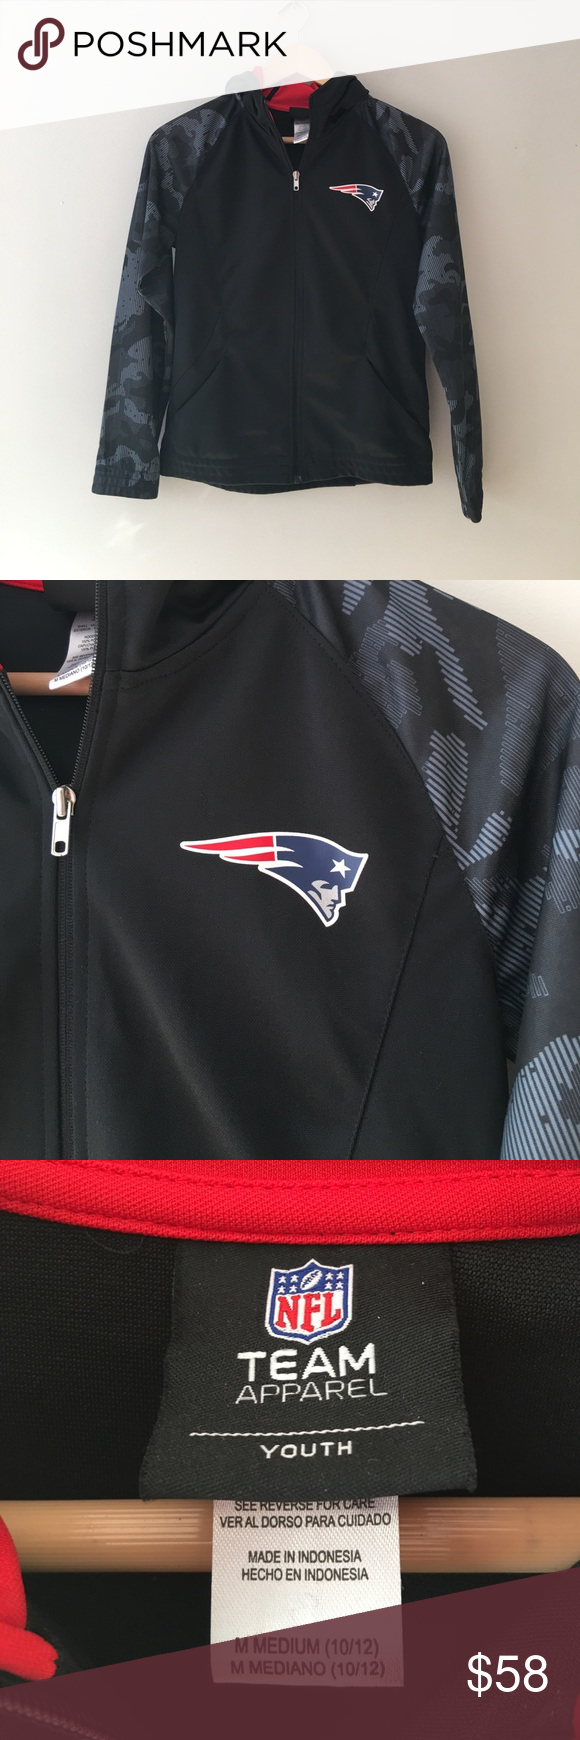 Nfl New England Patriots Cami Sleeve Zip Hoodie Nwot Rare New England Patriots Camo Sleeve Zip Front Hoodie By The Nfl Team Apparel Nfl Shirts Team Apparel Nfl Team Apparel